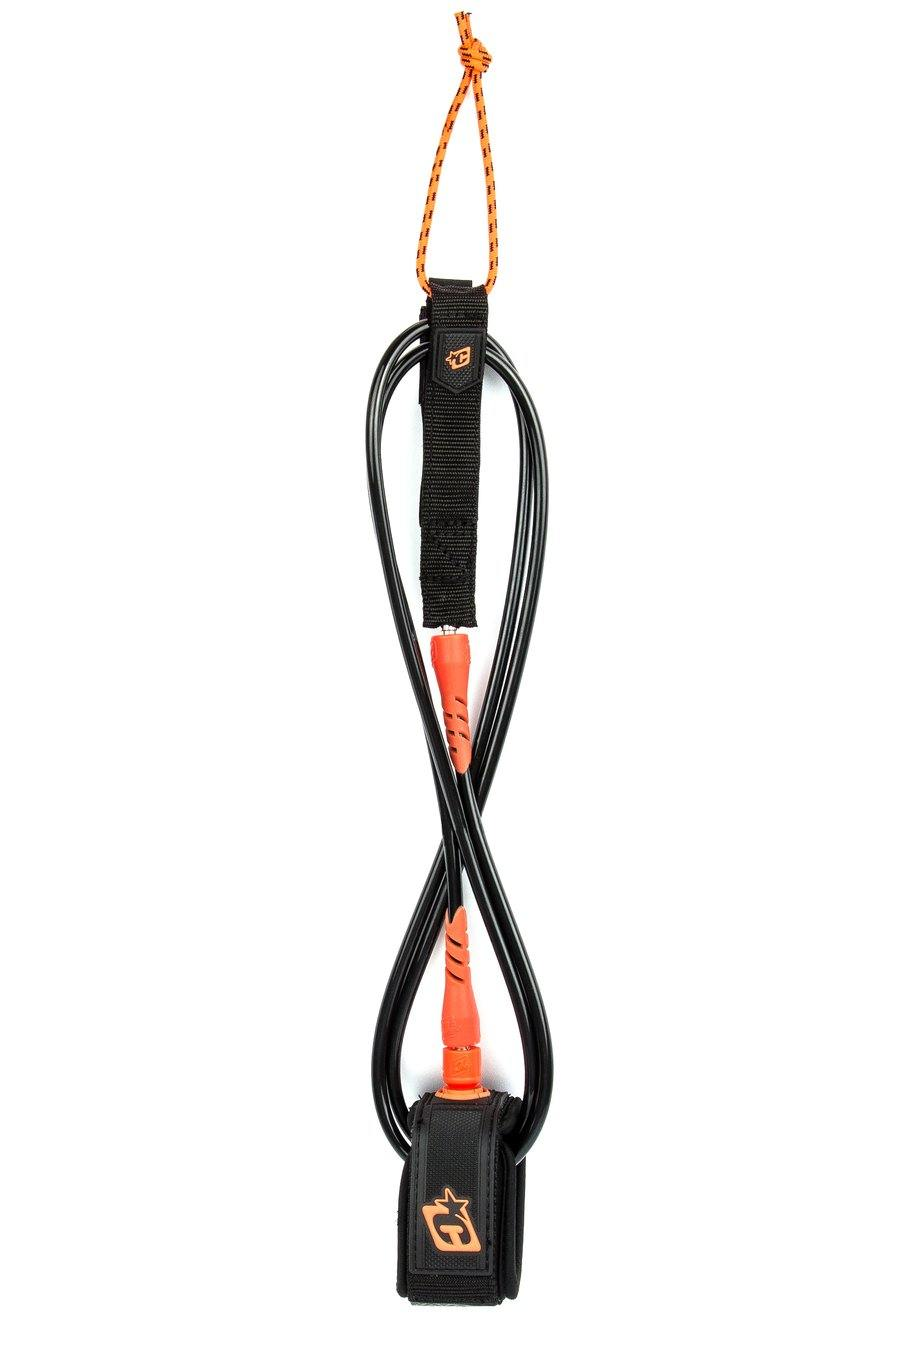 5' or 6' Creatures of Leisure Lite Leash - Colors Vary - Urban Surf